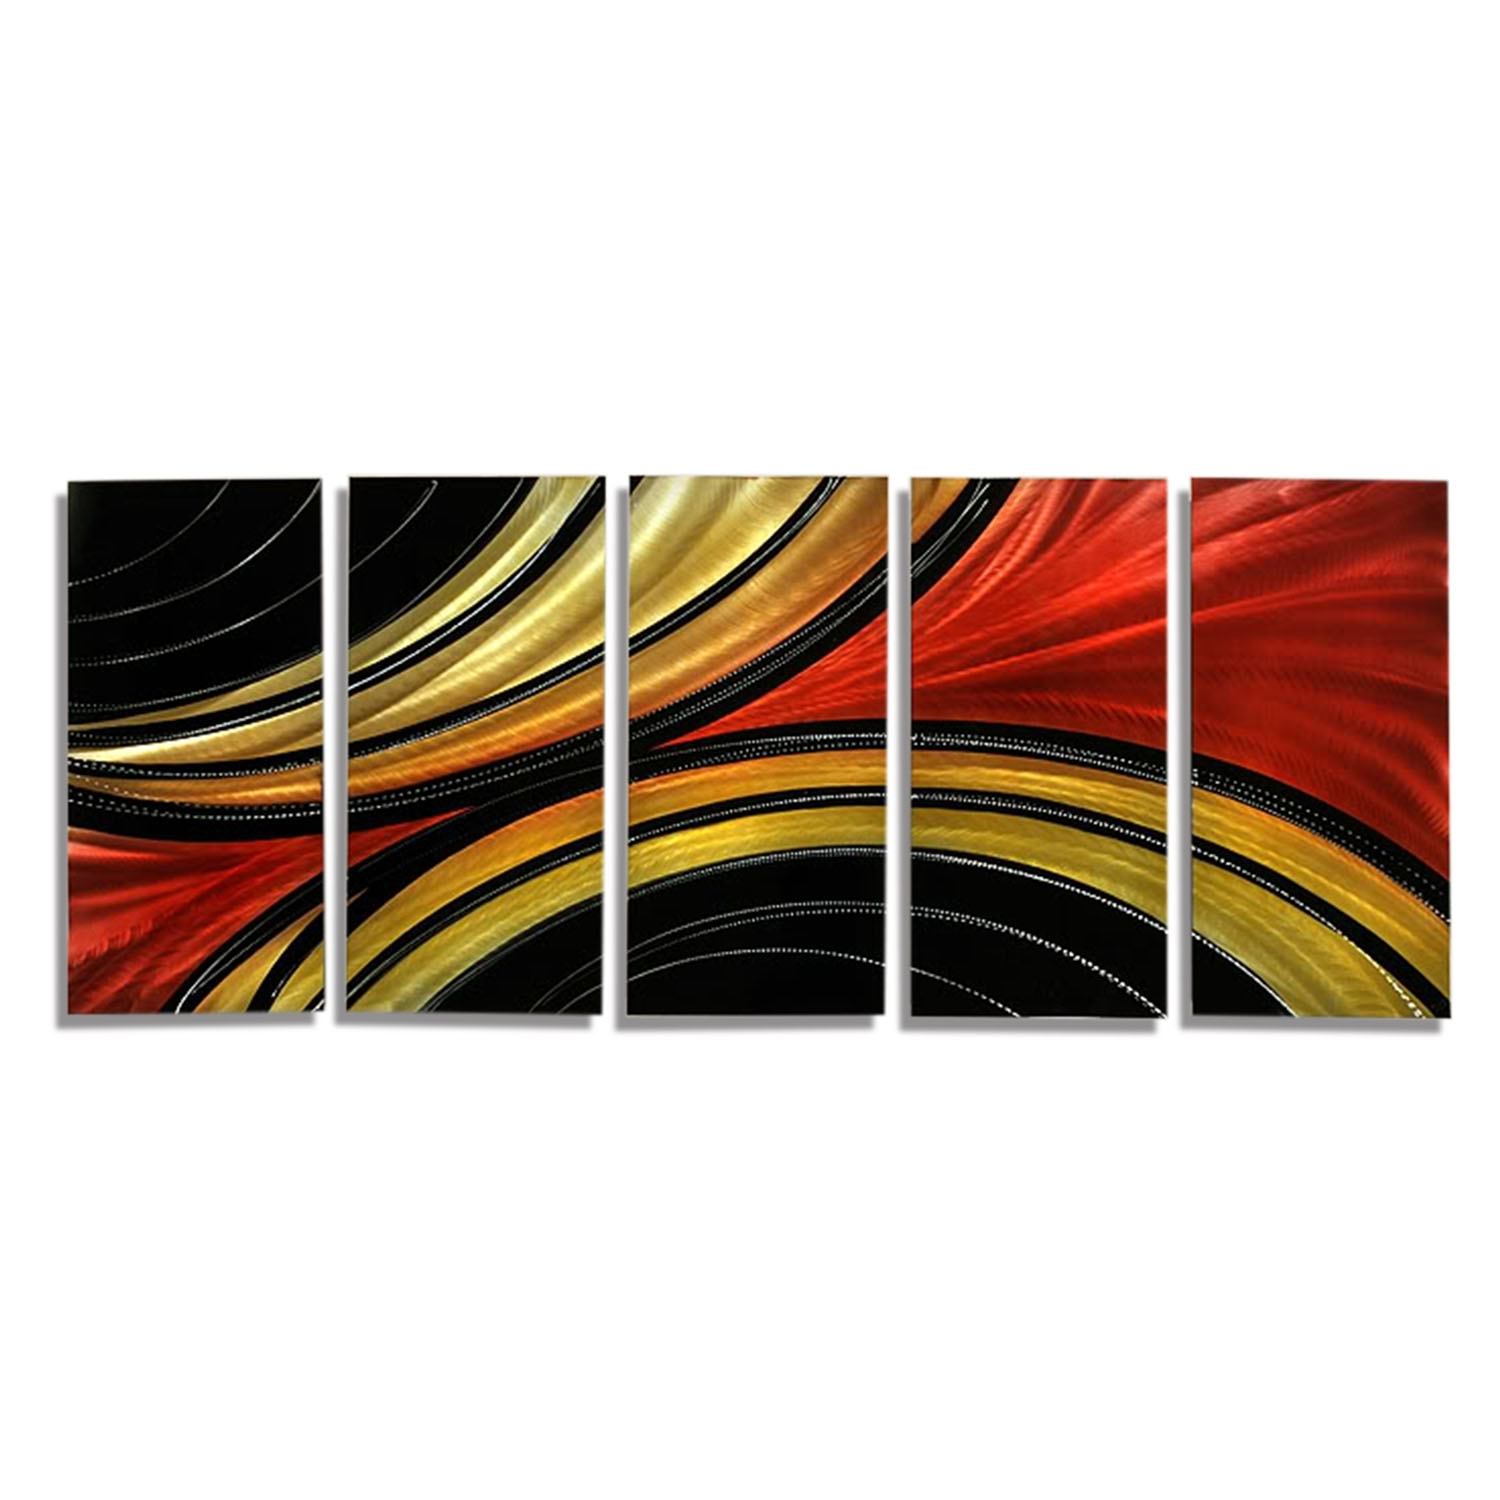 Solaris Xl – Massive Metal Abstract Red Black Gold Painting Wall With Current Black And Gold Abstract Wall Art (View 11 of 20)